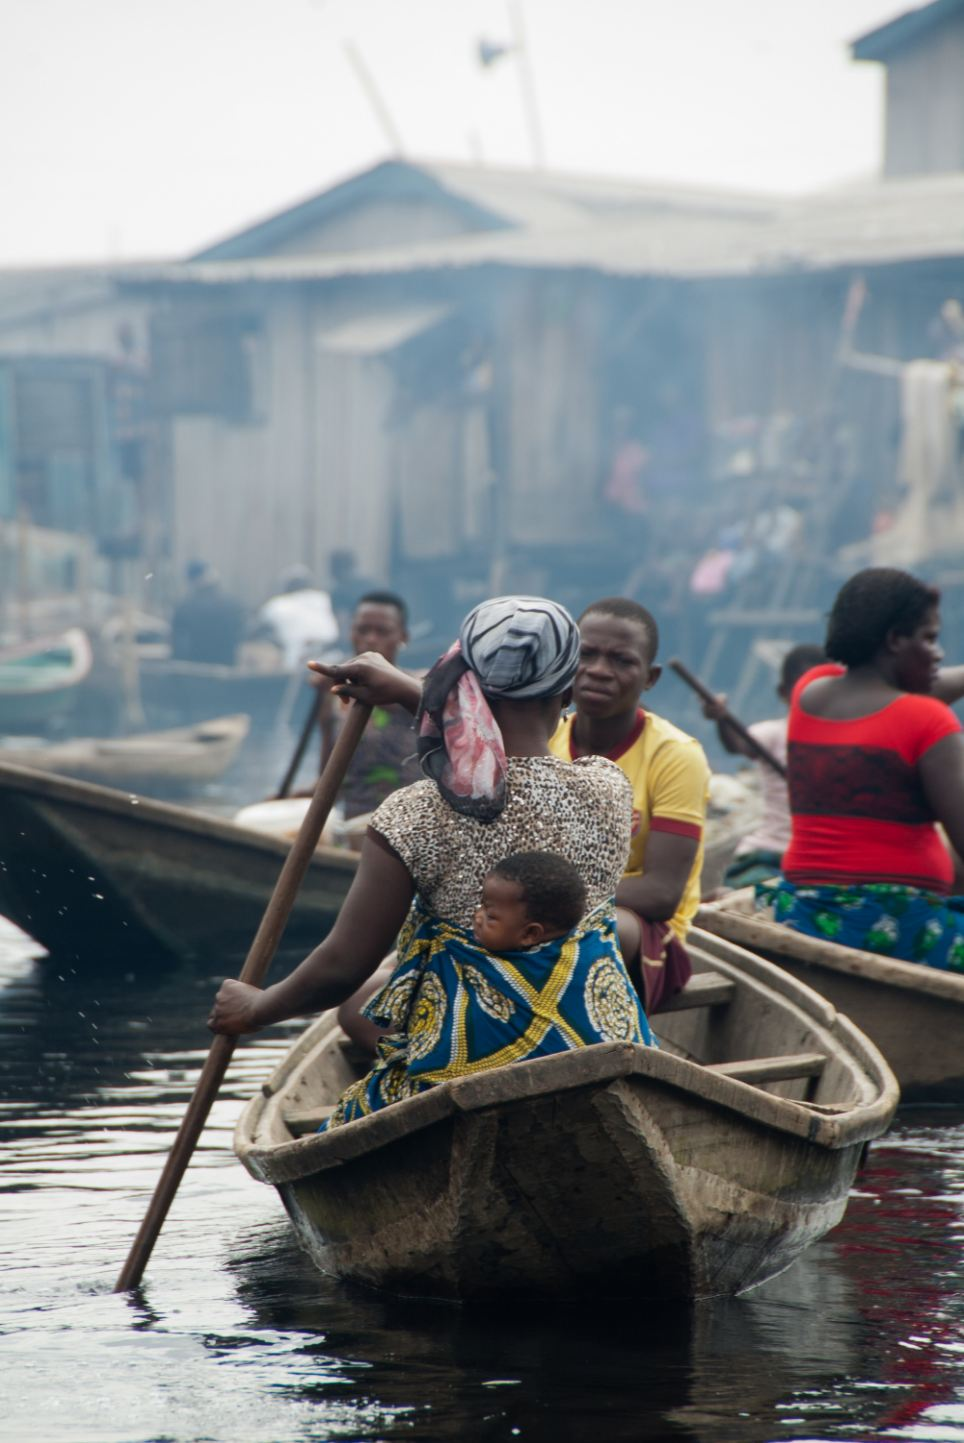 A mother backing her baby and paddling a canoe. Despite attempts by officials to demolish the slums, residents carry on with their lives